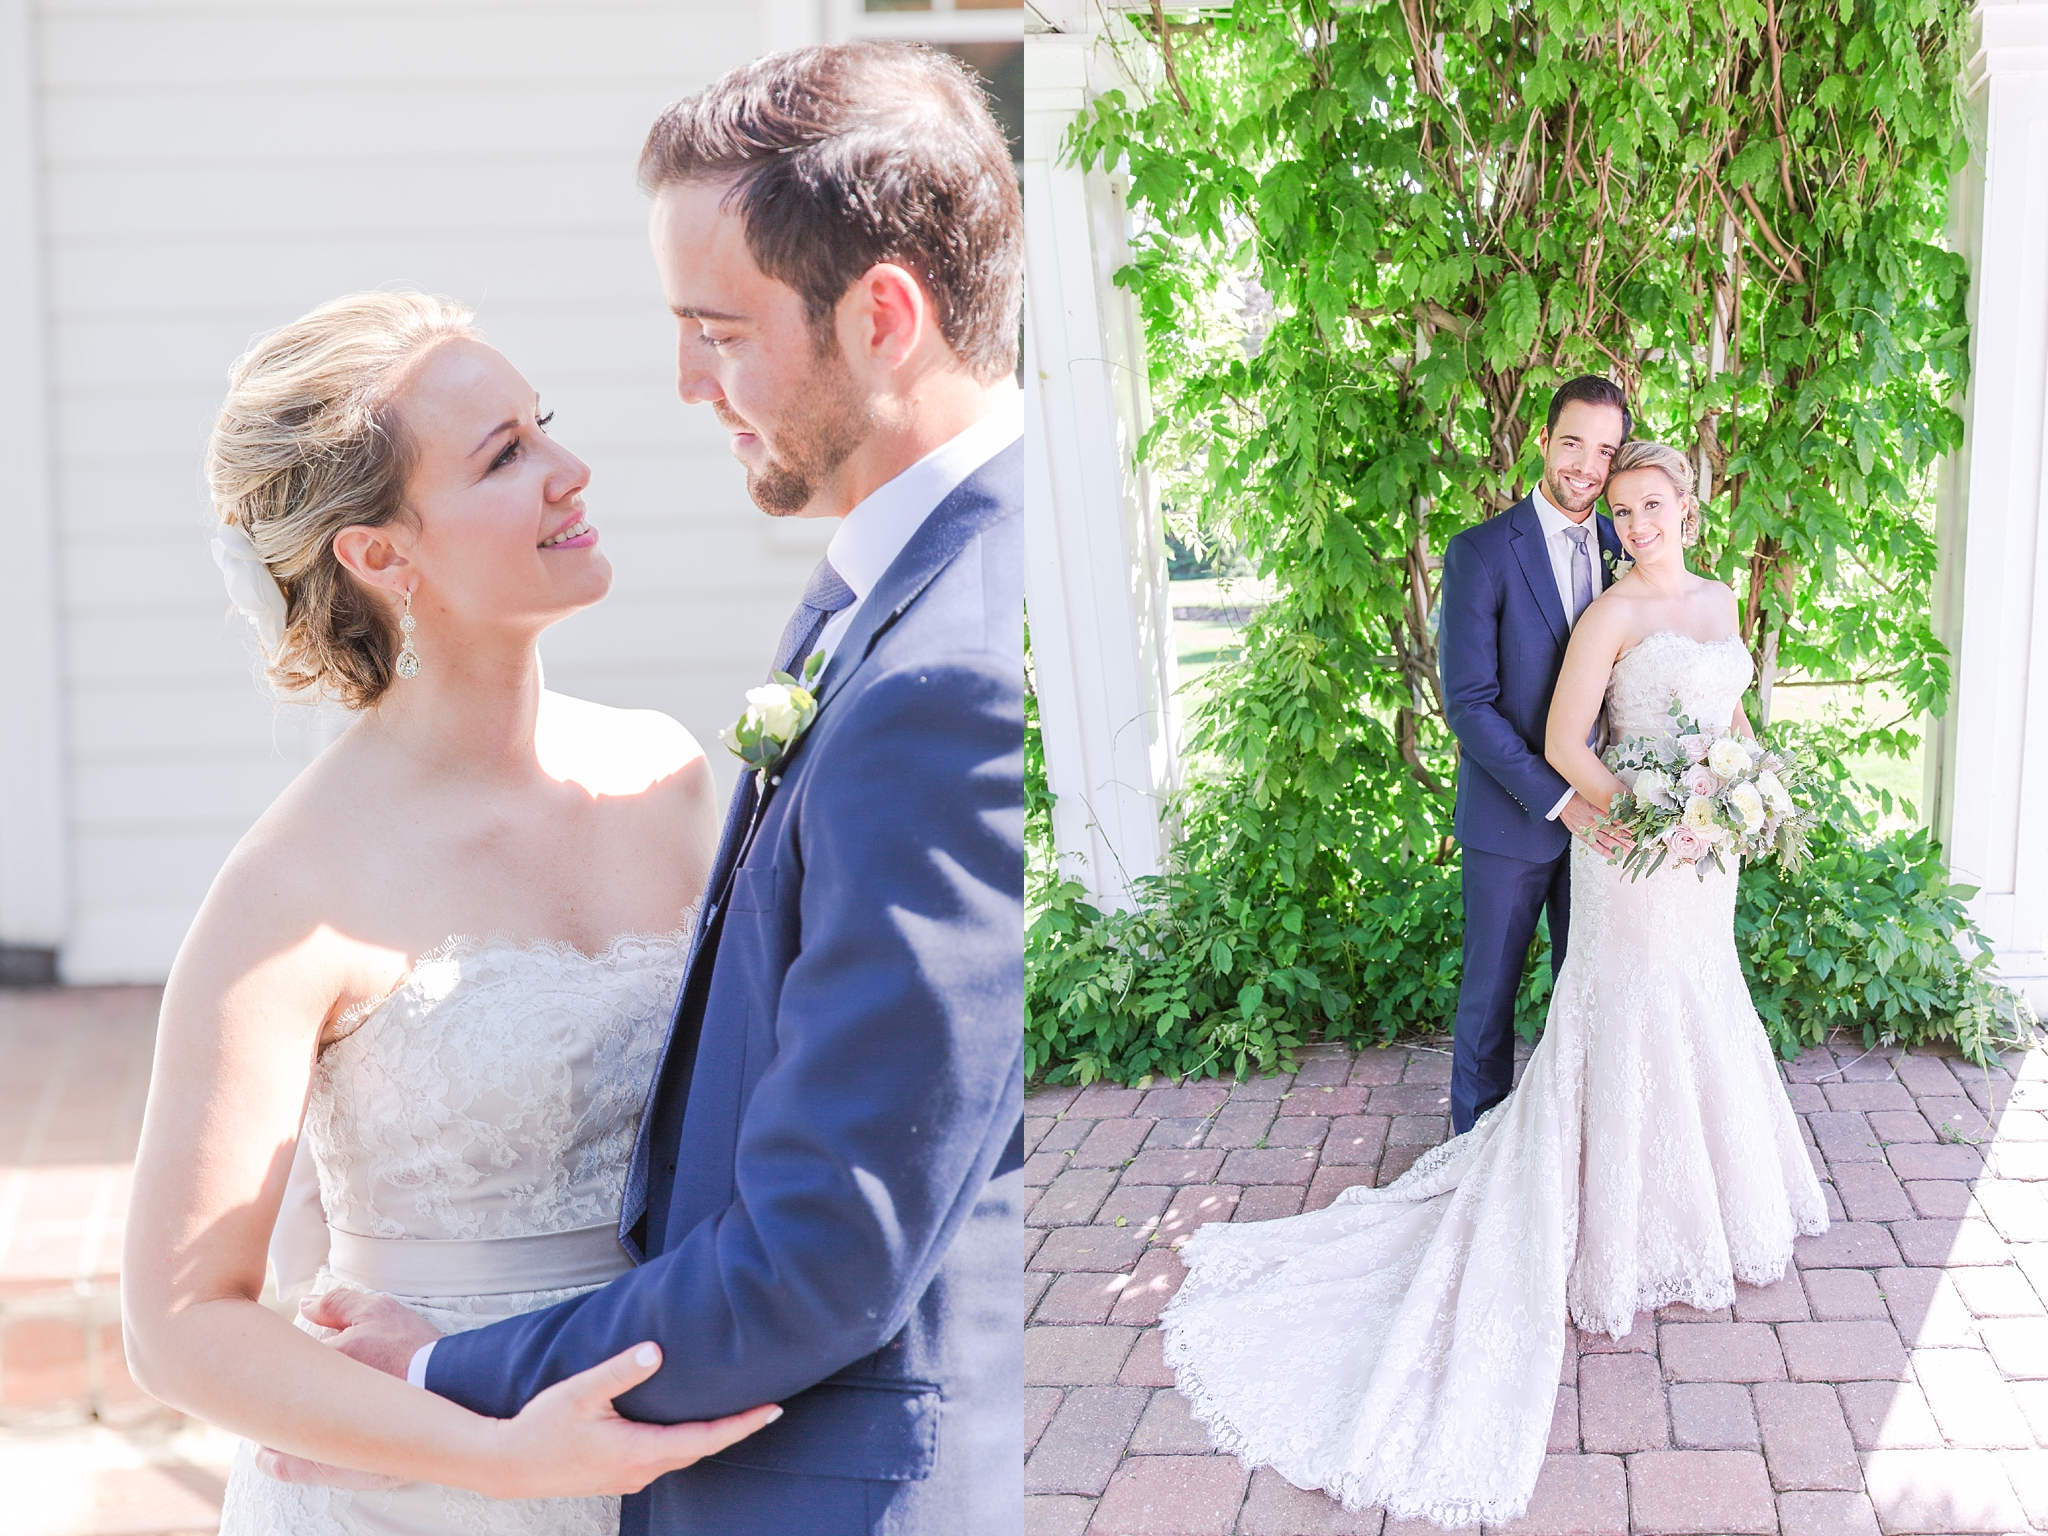 fun-candid-laid-back-wedding-photos-at-wellers-carriage-house-in-saline-michigan-and-at-the-eagle-crest-golf-resort-by-courtney-carolyn-photography_0049.jpg